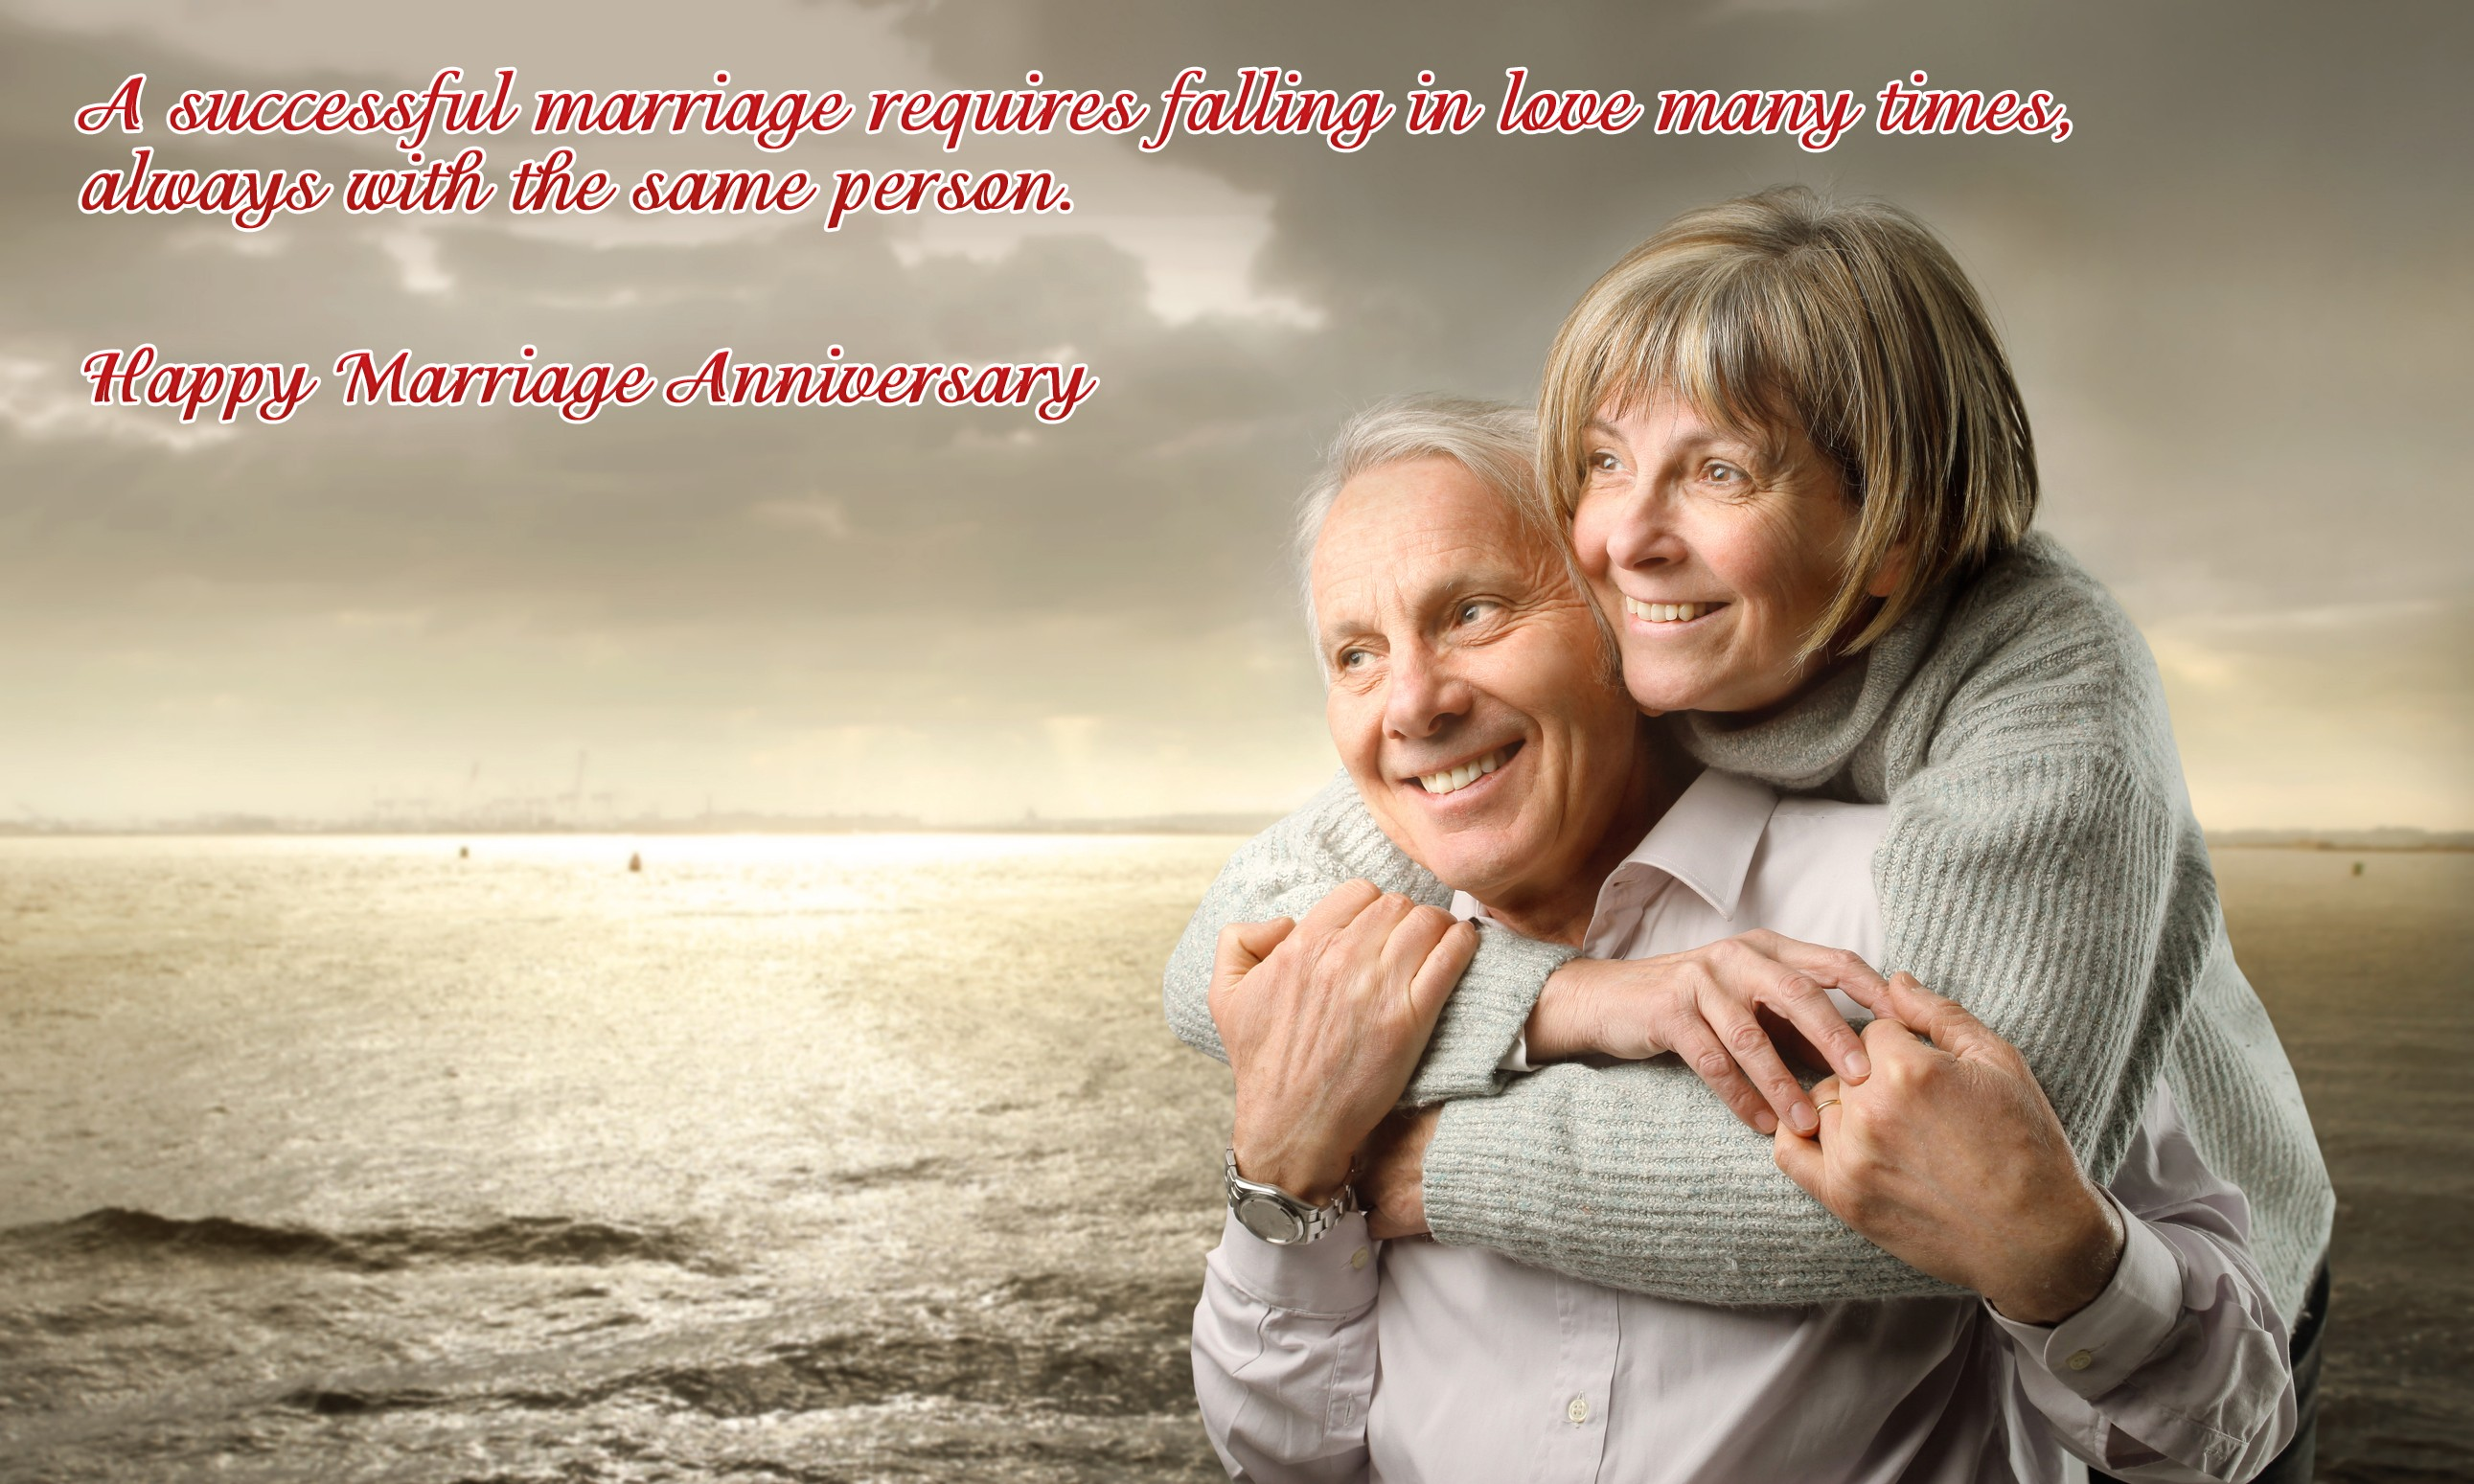 Marriage quote #3